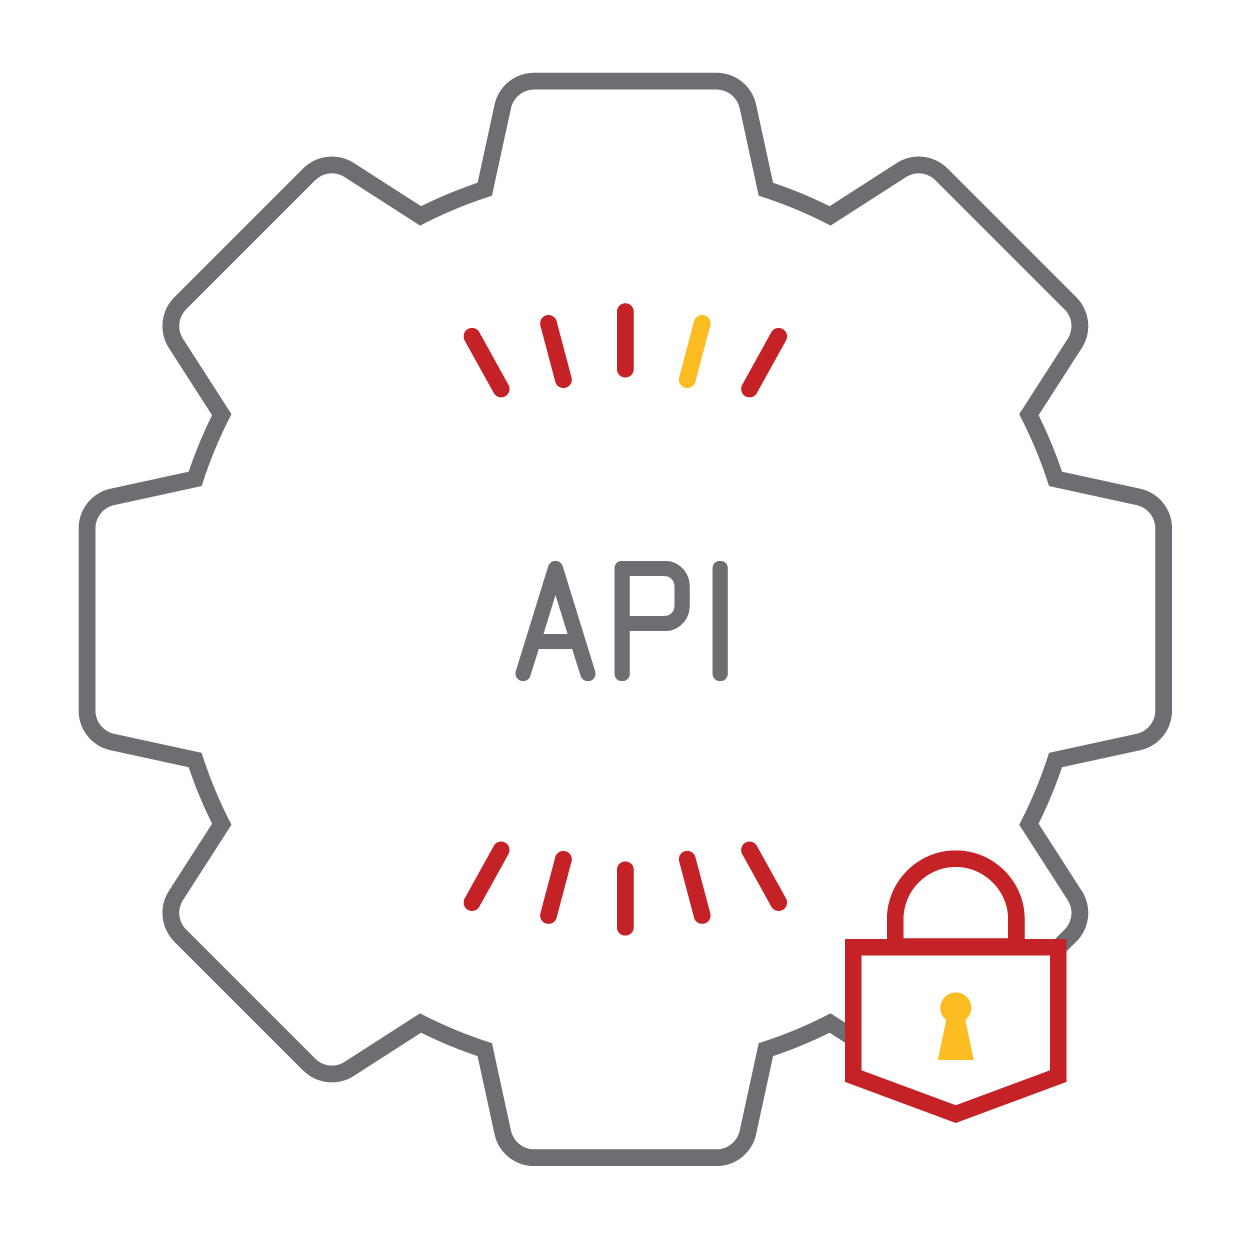 Api Security Image